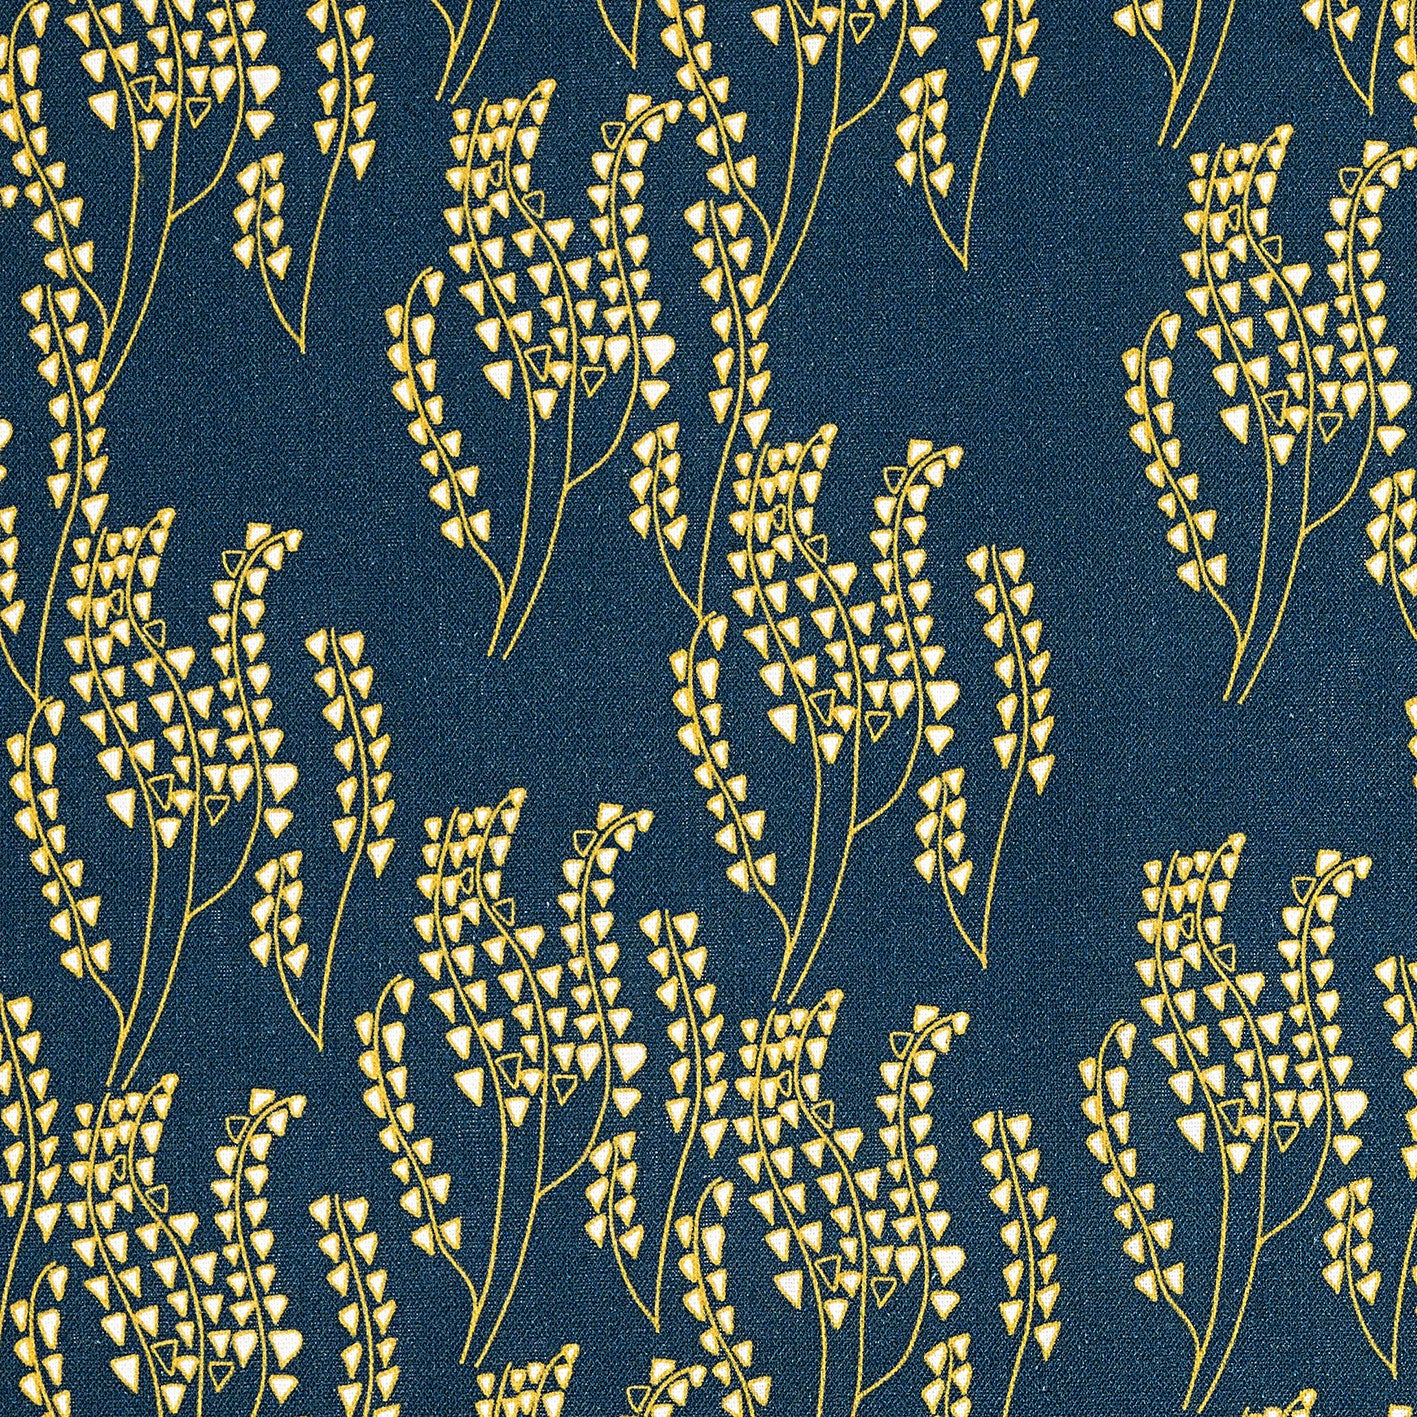 Maricopa Graphic Floral Pattern Cotton Linen Home Decor Fabric by the meter or by the yard for curtains, blinds or upholstery in Dark Petrol Blue / Maize Yellow ships from Canada worldwide (USA)